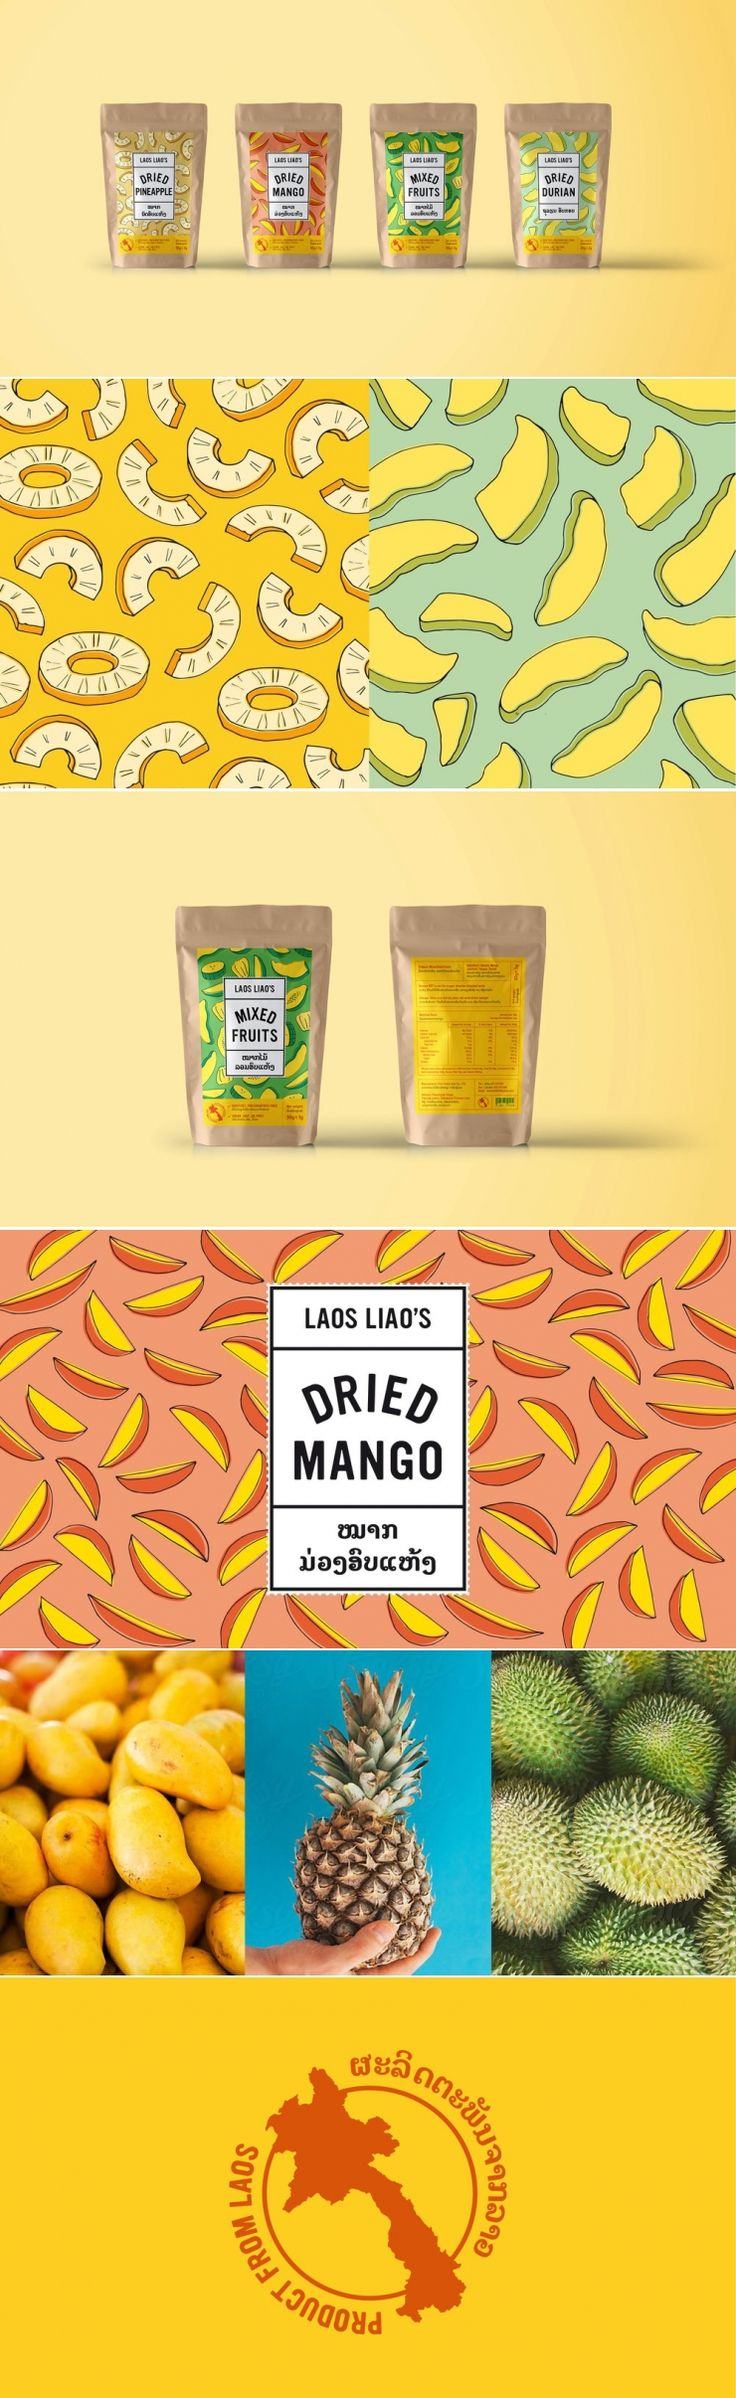 This Dried Fruit Packaging is Fun and Friendly — The Dieline | Packaging & Branding Design & Innovation News